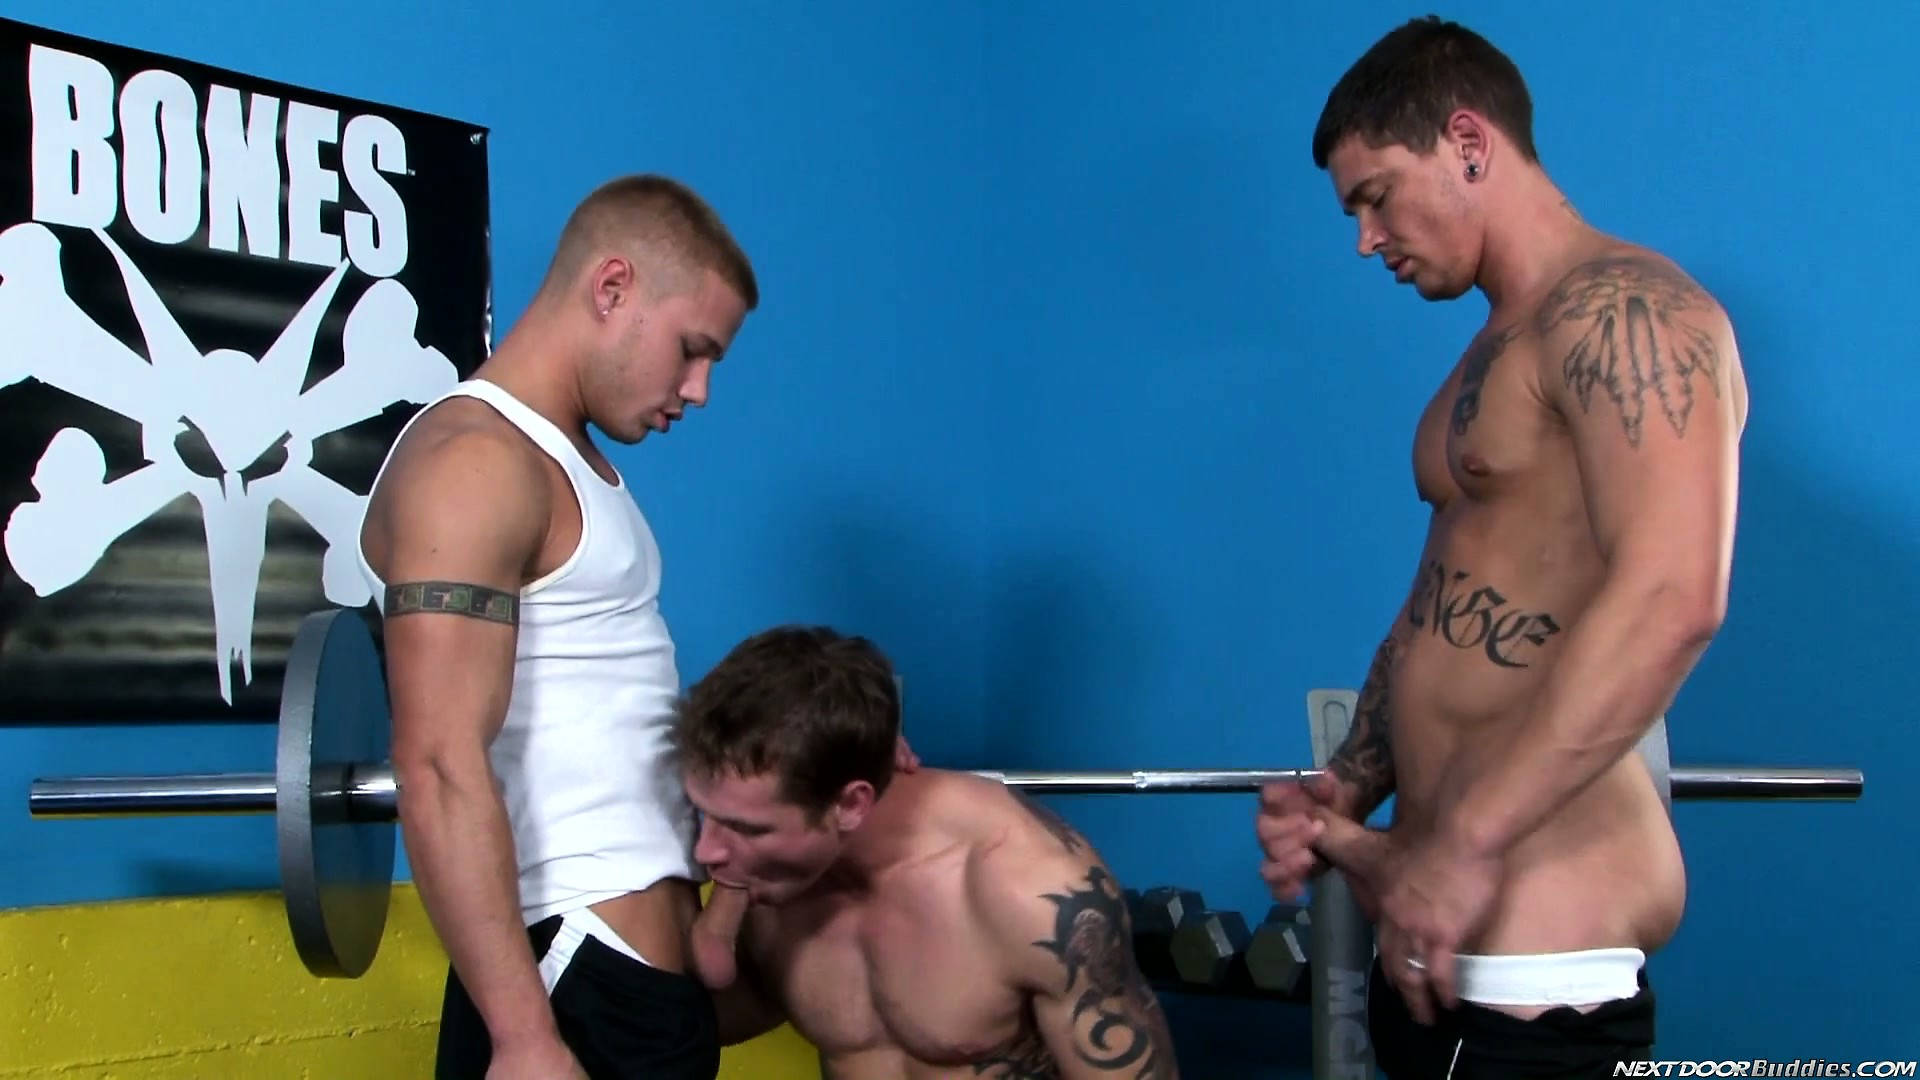 Porn Tube of Working Out At The Gym Makes This Trio Of Buff Boys Horny, So Out Come The Cocks